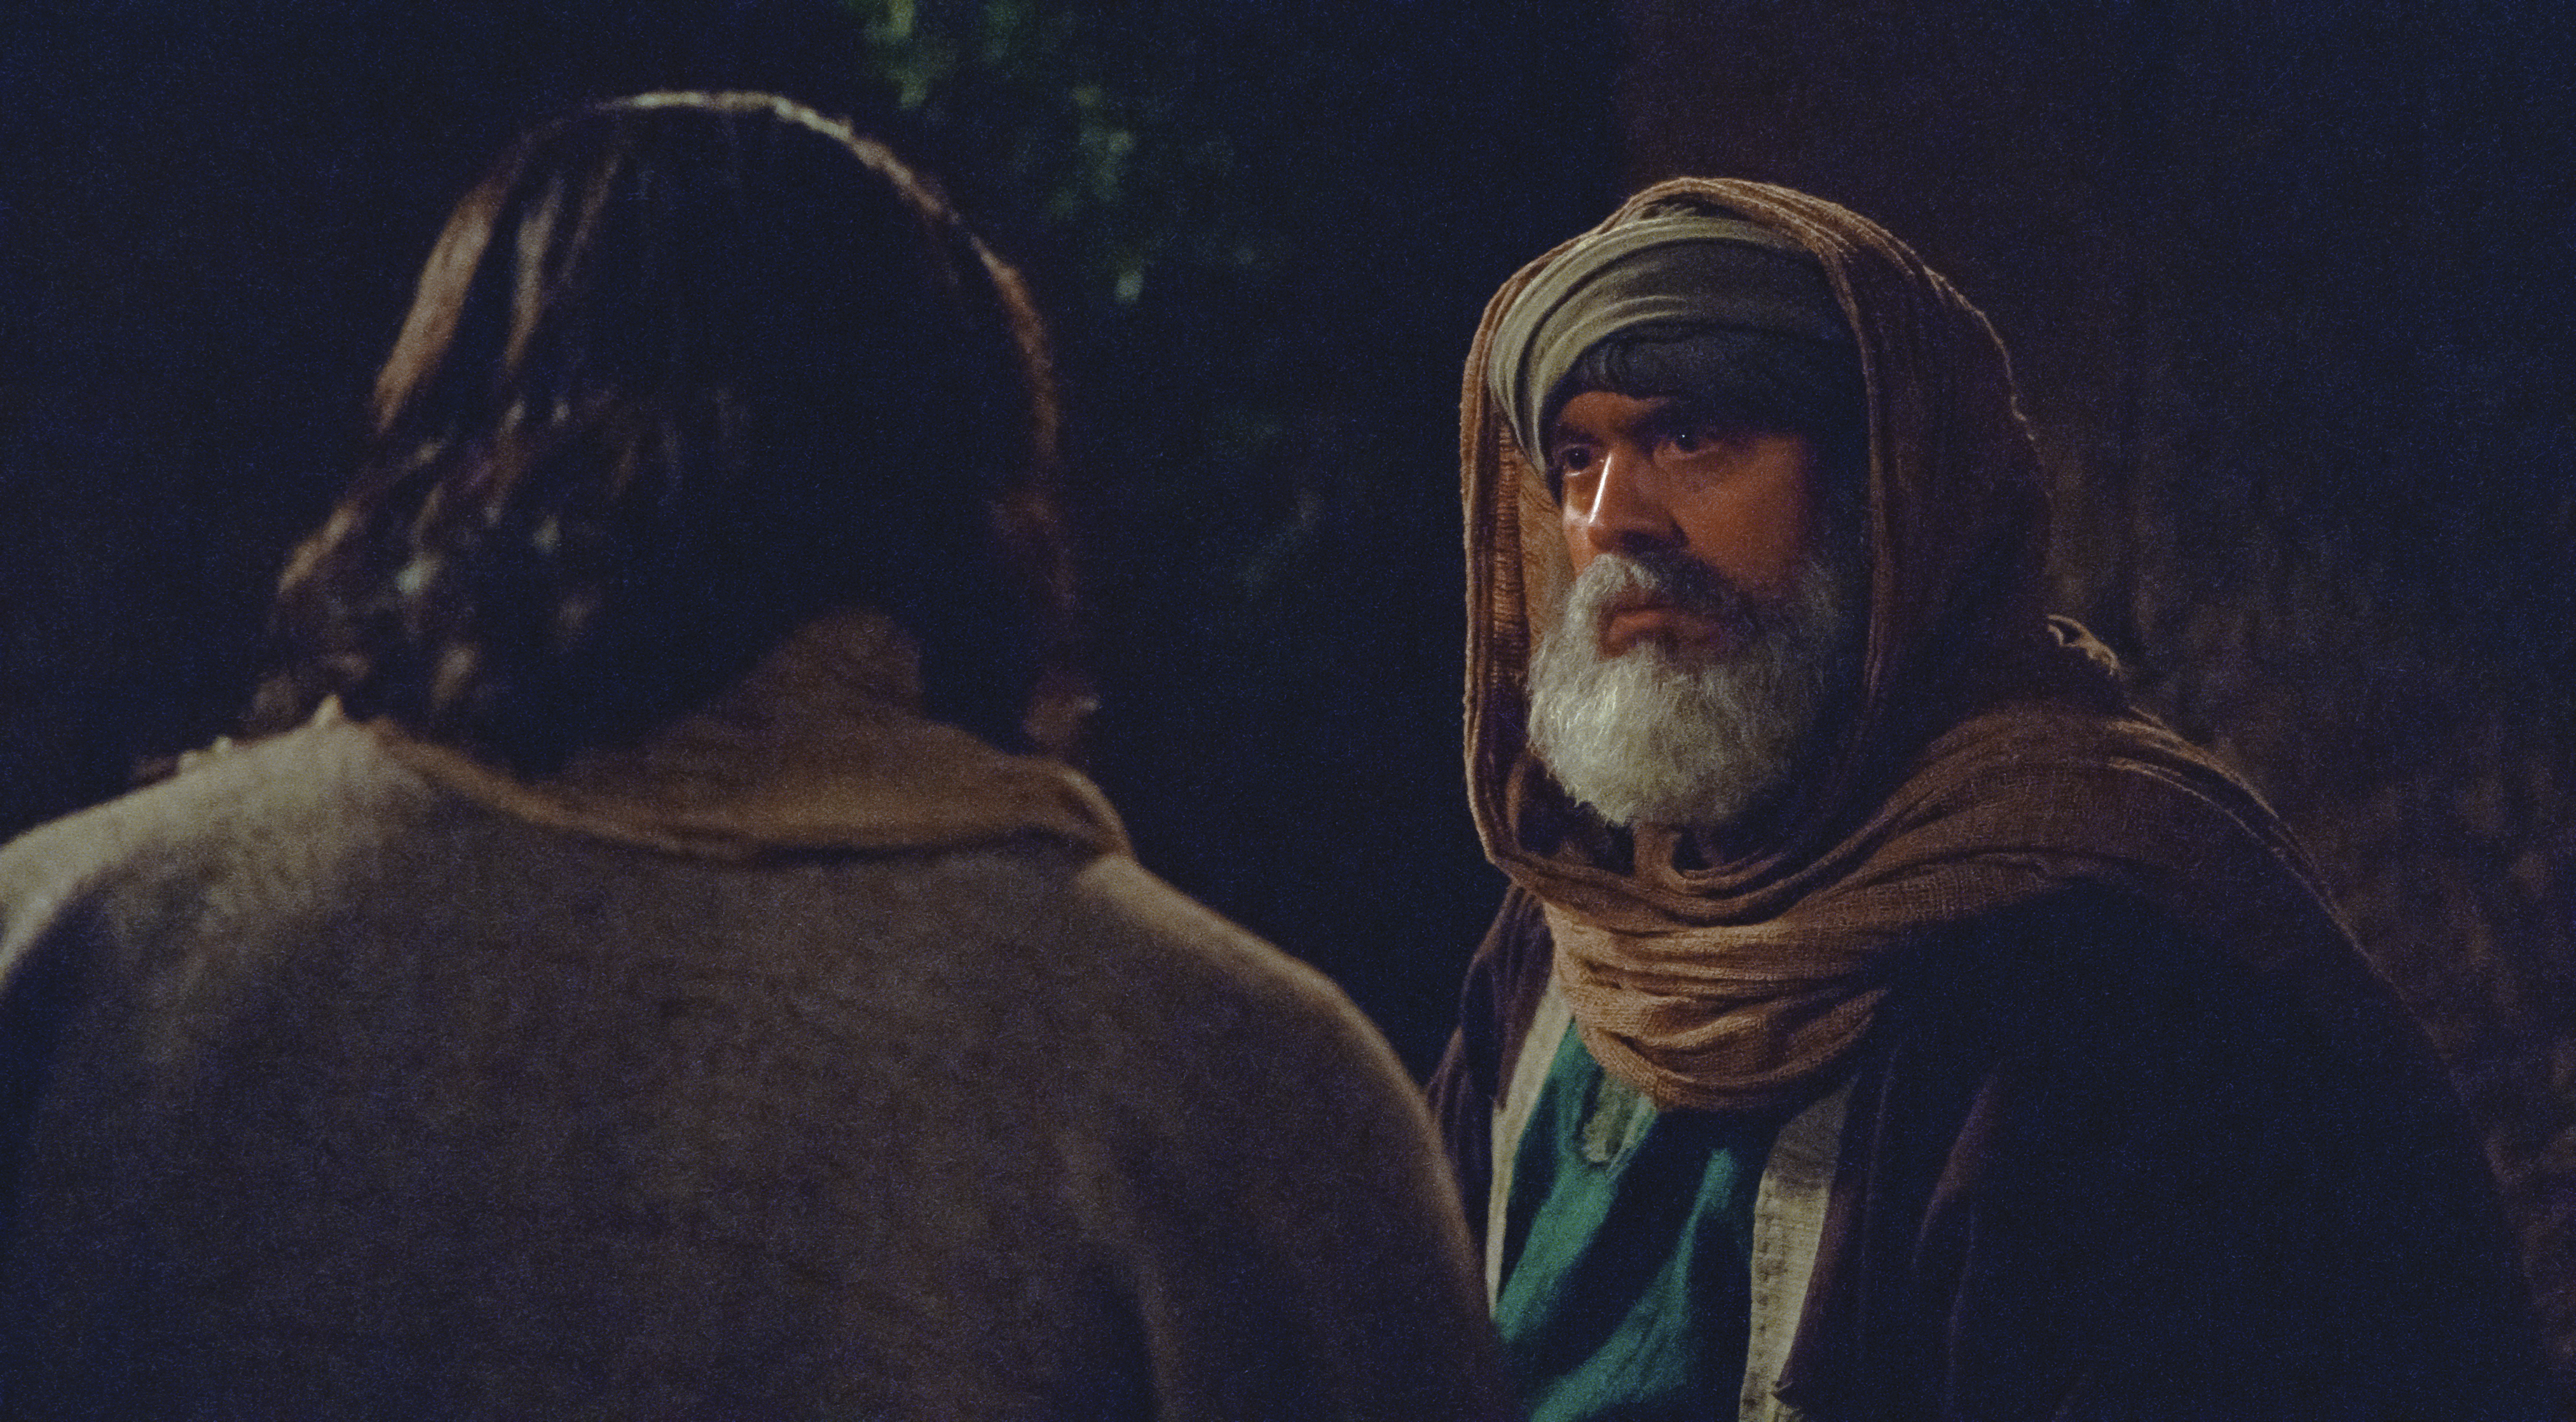 Nicodemus listens to Jesus as He teaches him.